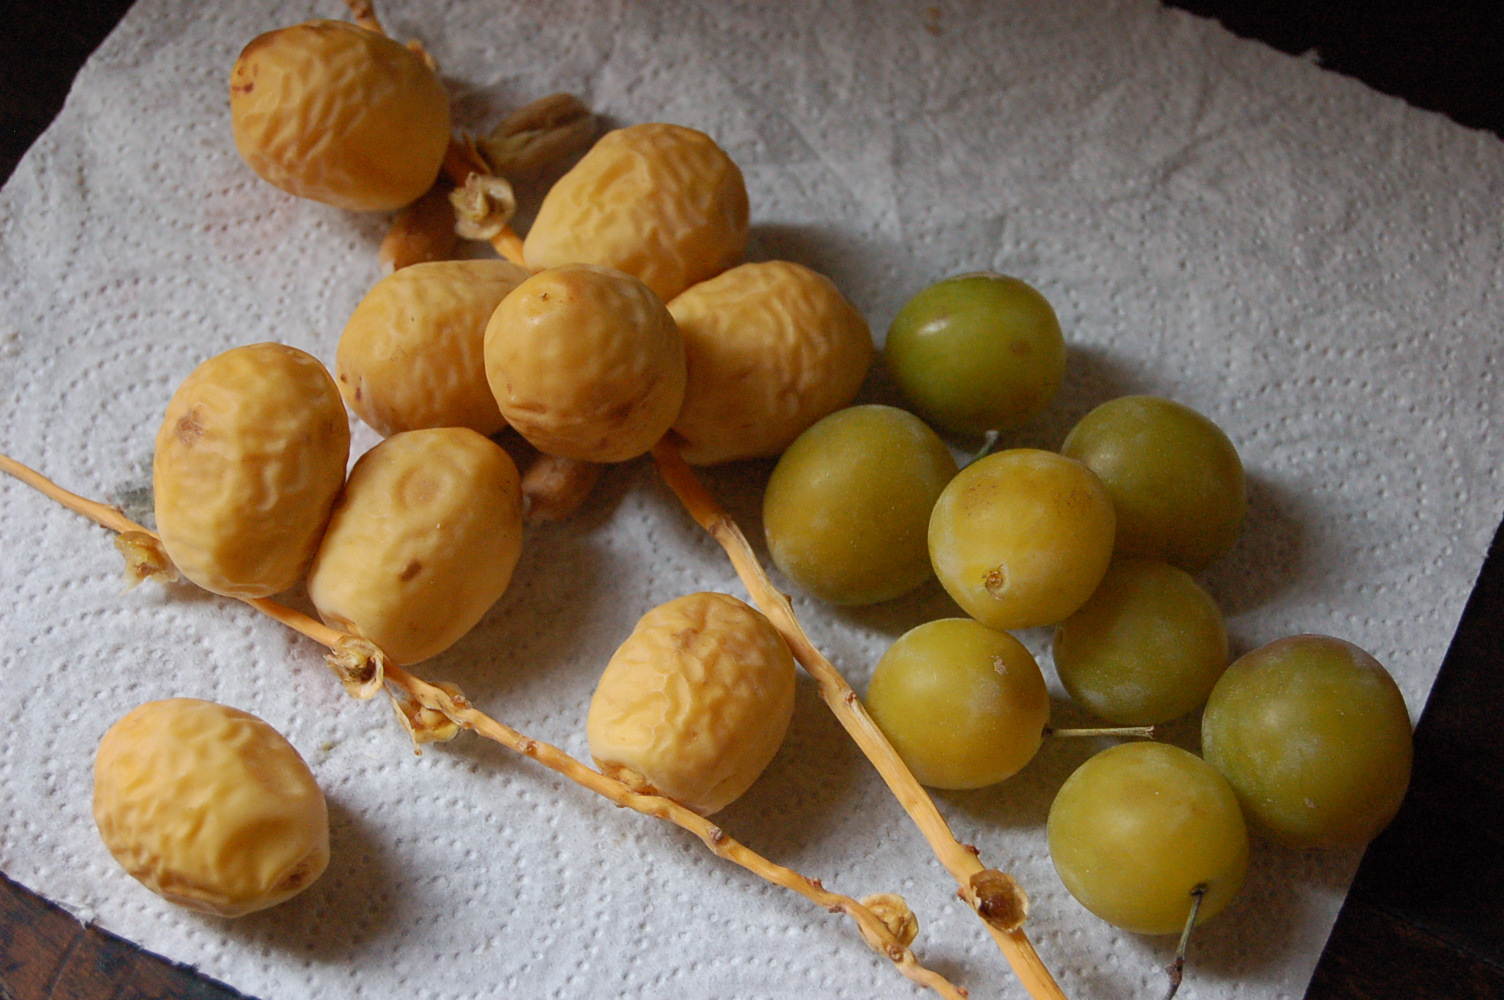 fresh dates and mirabelles